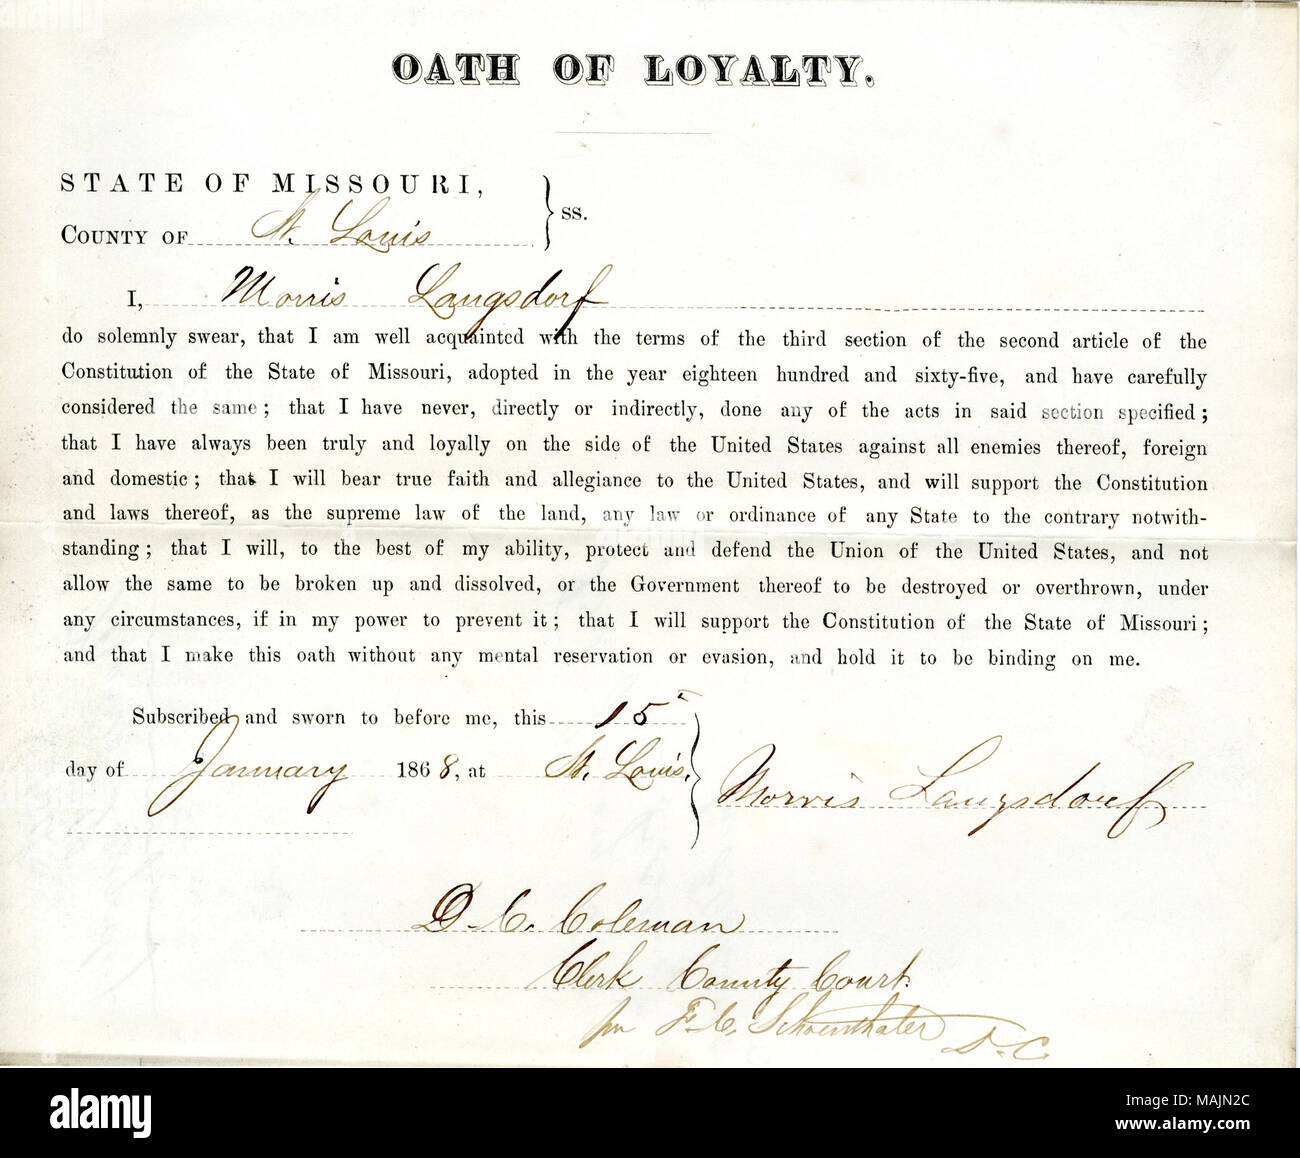 Swears oath of allegiance to the Government of the United States and the State of Missouri. Title: Loyalty oath of Morris Langsdorf of Missouri, County of St. Louis  . 15 January 1868. Langsdorf, M. - Stock Image